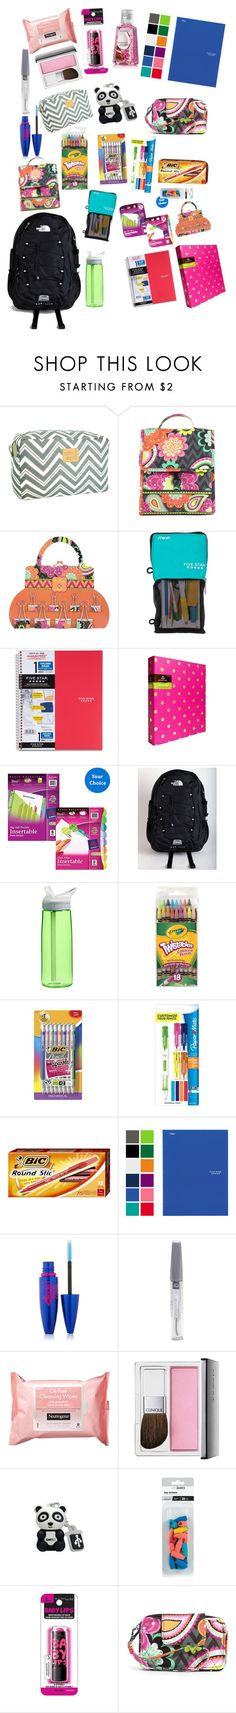 """School things"" by barrelqueen567 ❤ liked on Polyvore featuring Vera Bradley, Mead, Avery, The North Face, CamelBak, Paper Mate, Maybelline, Neutrogena and Clinique"